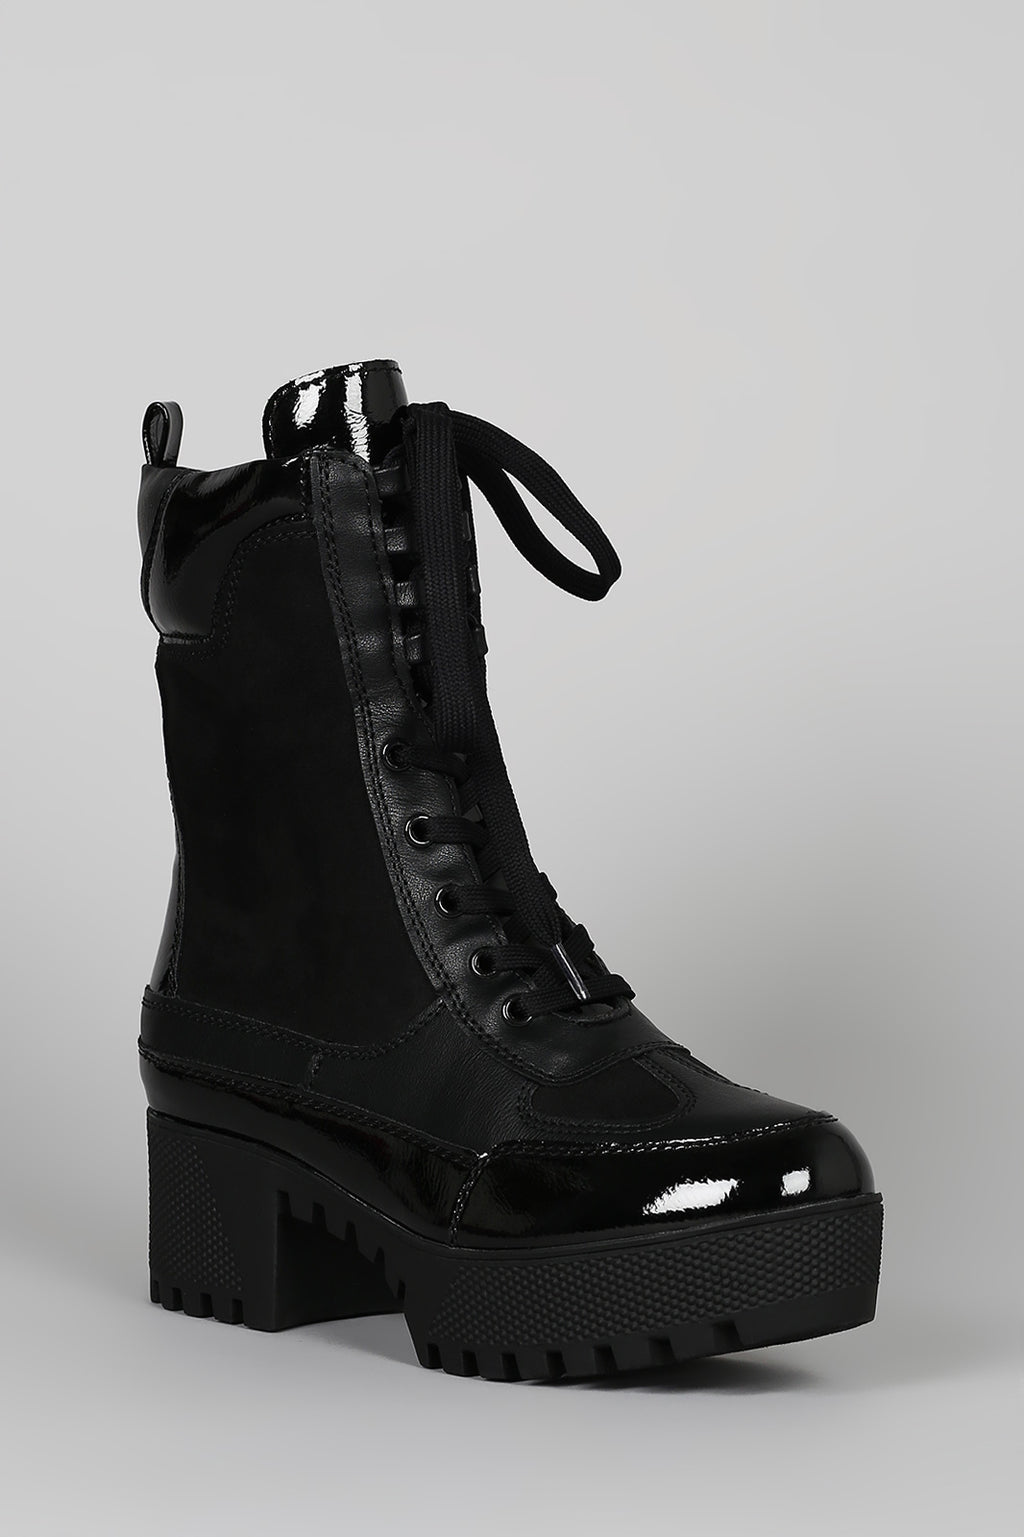 Bamboo Powerful-06 Black Lace Up Platform Lug Sole